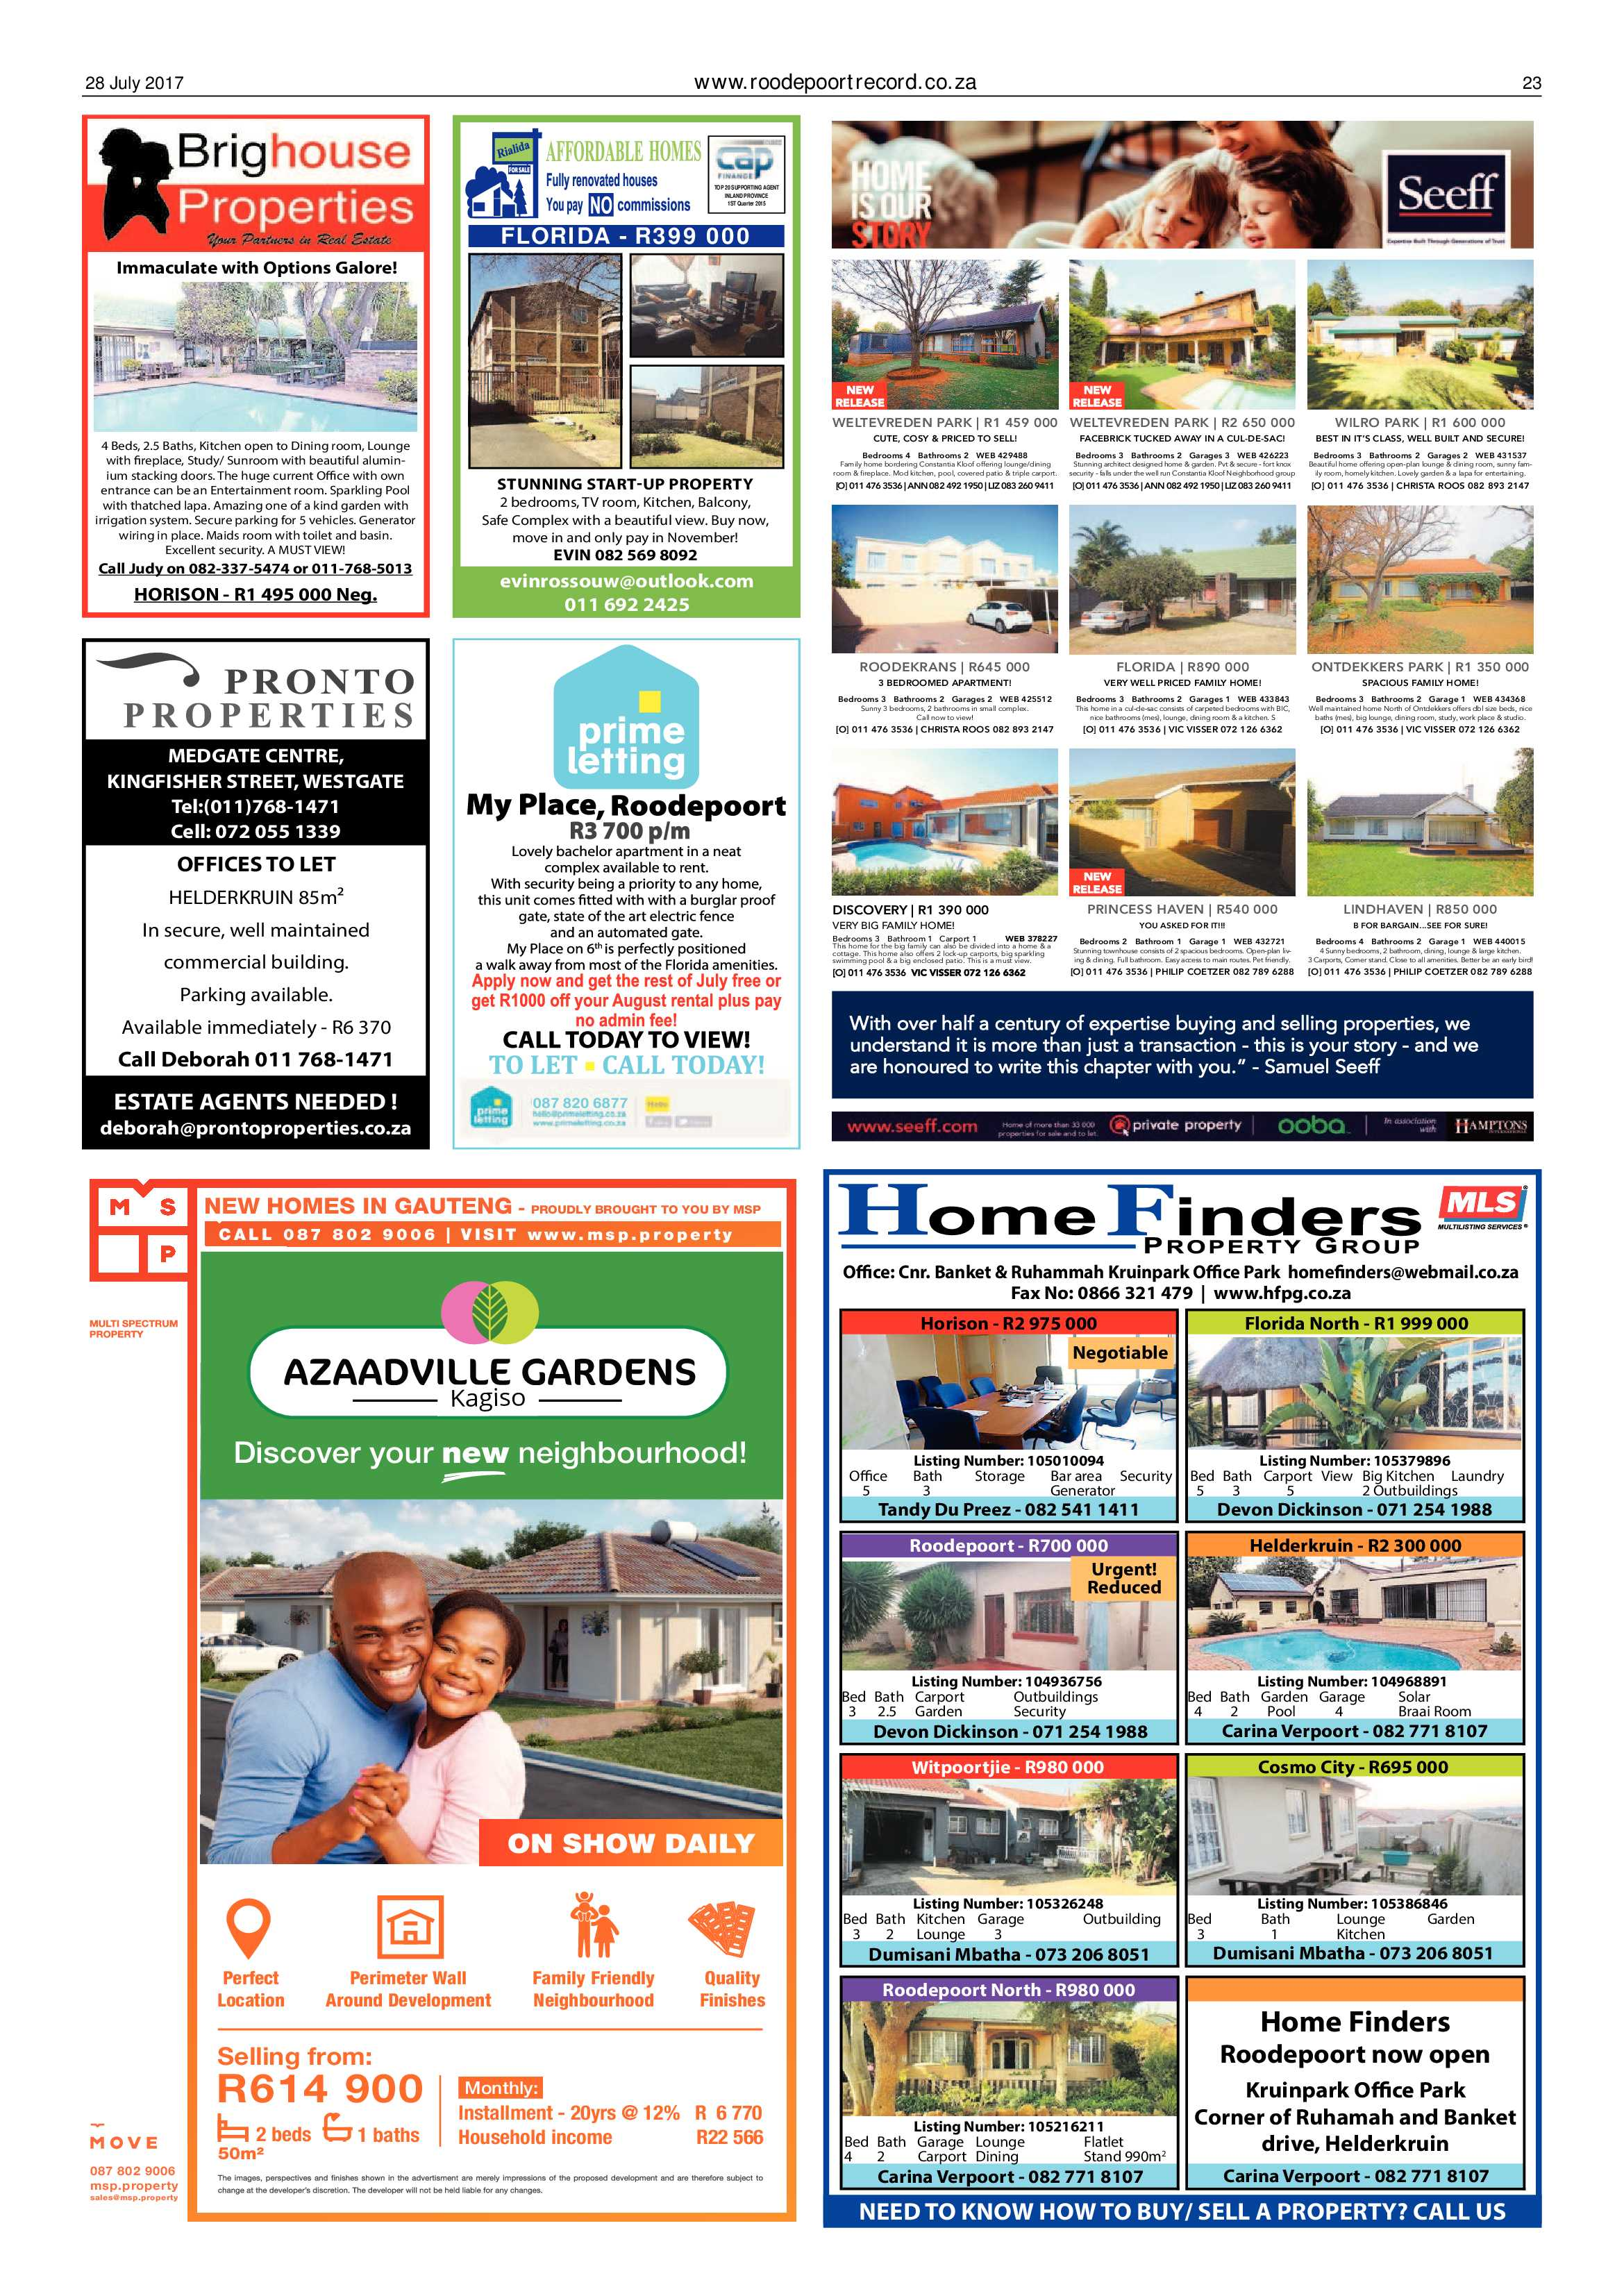 roodepoort-record-28-july-2017-epapers-page-23